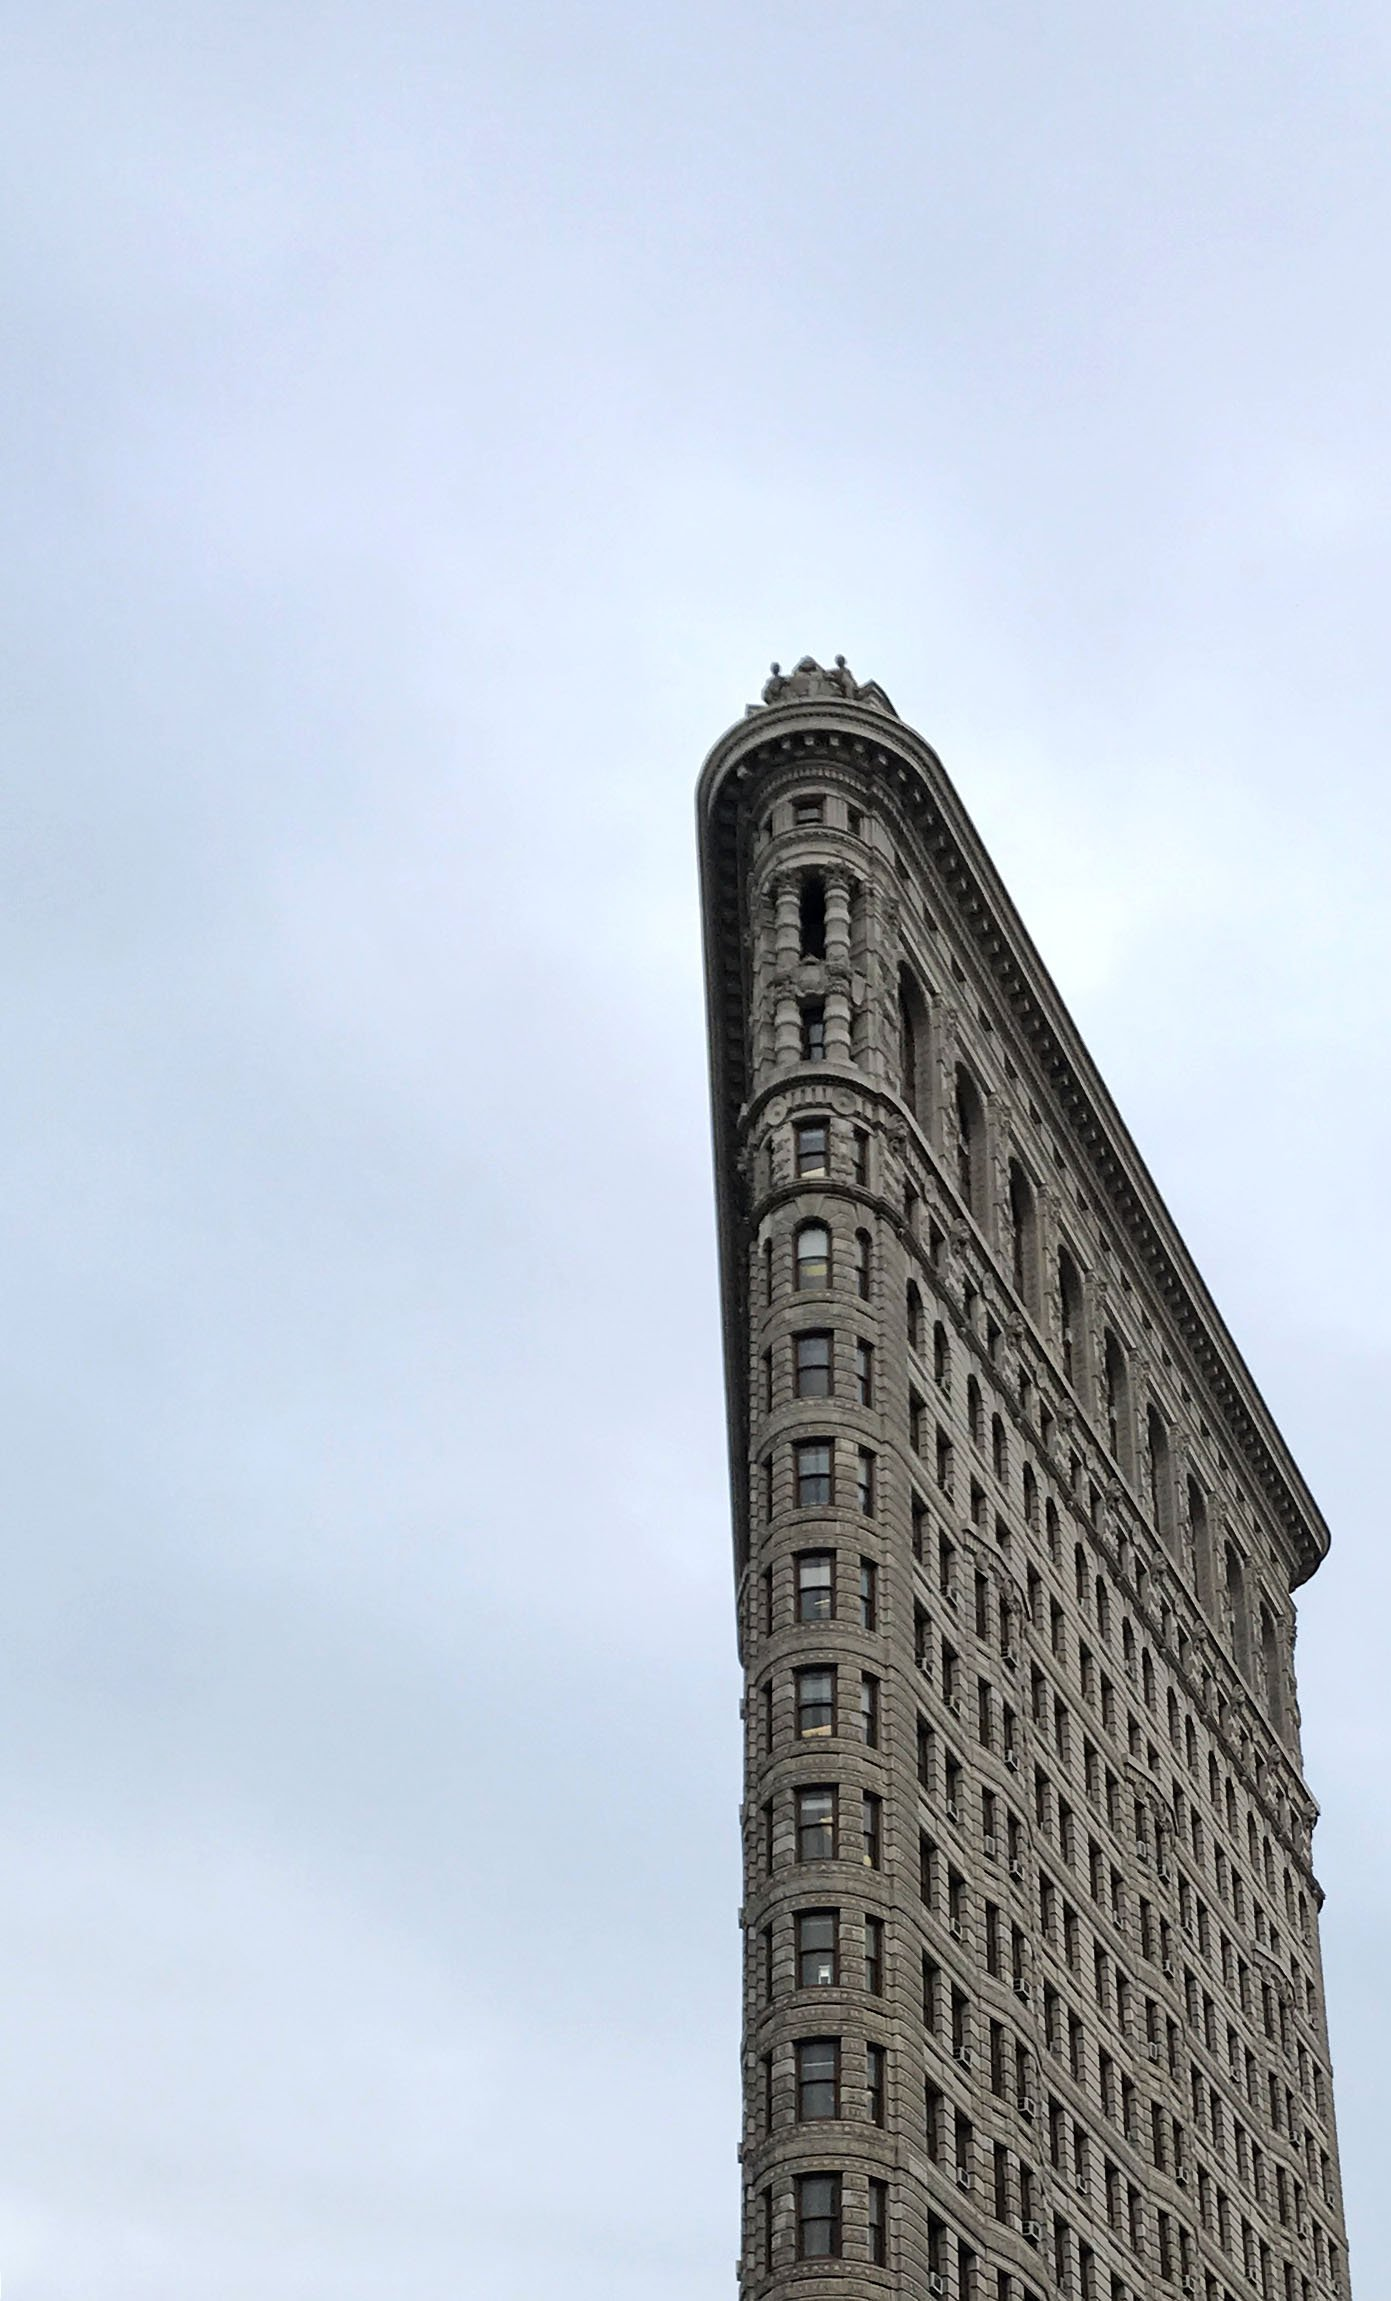 the flatiron building in New York City